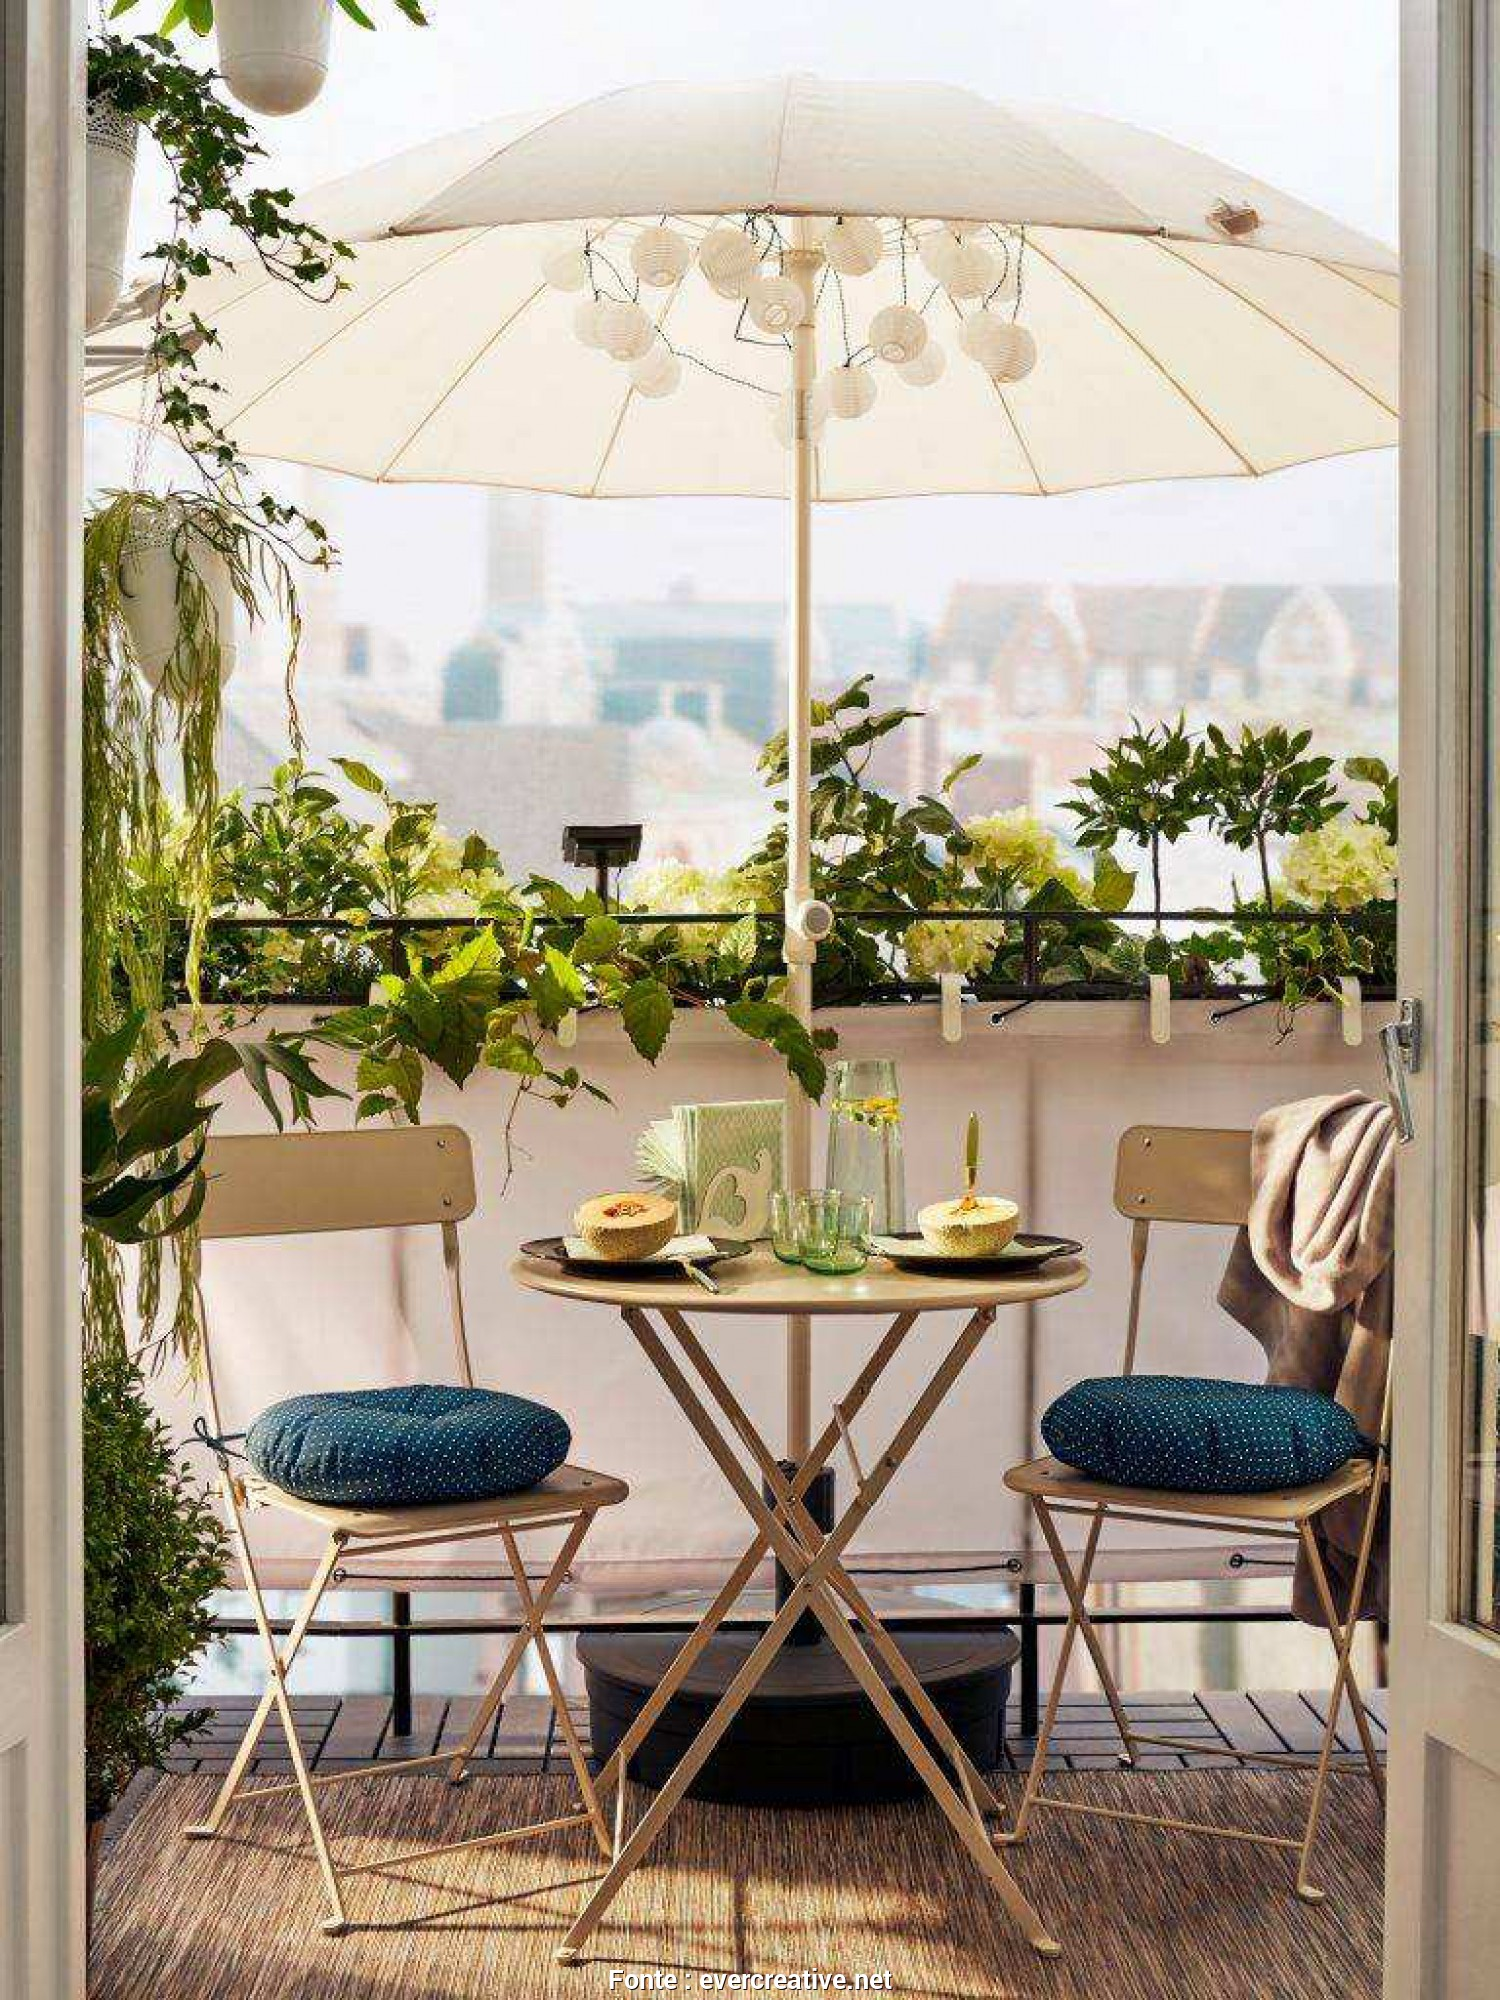 Stoffe Ikea 2017, Semplice ... Outdoor Stoffe Ikea Fresh 6 Outdoor Furniture Trends To Watch &, In 2017